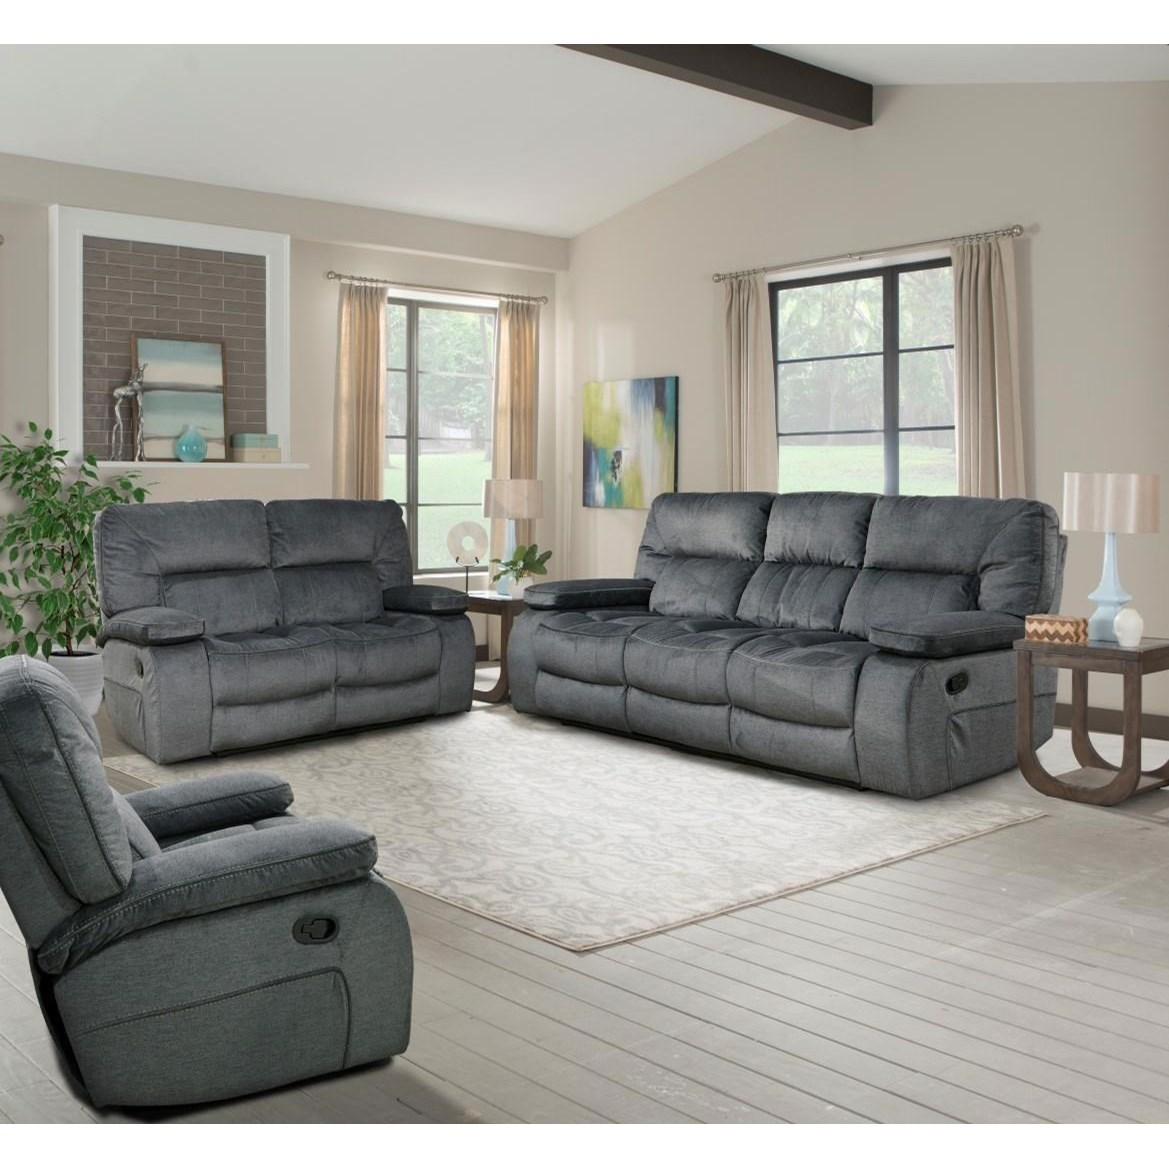 Parker living chapman mcha 834 pol casual dual reclining sofa with drop down center console for The parkers tv show living room